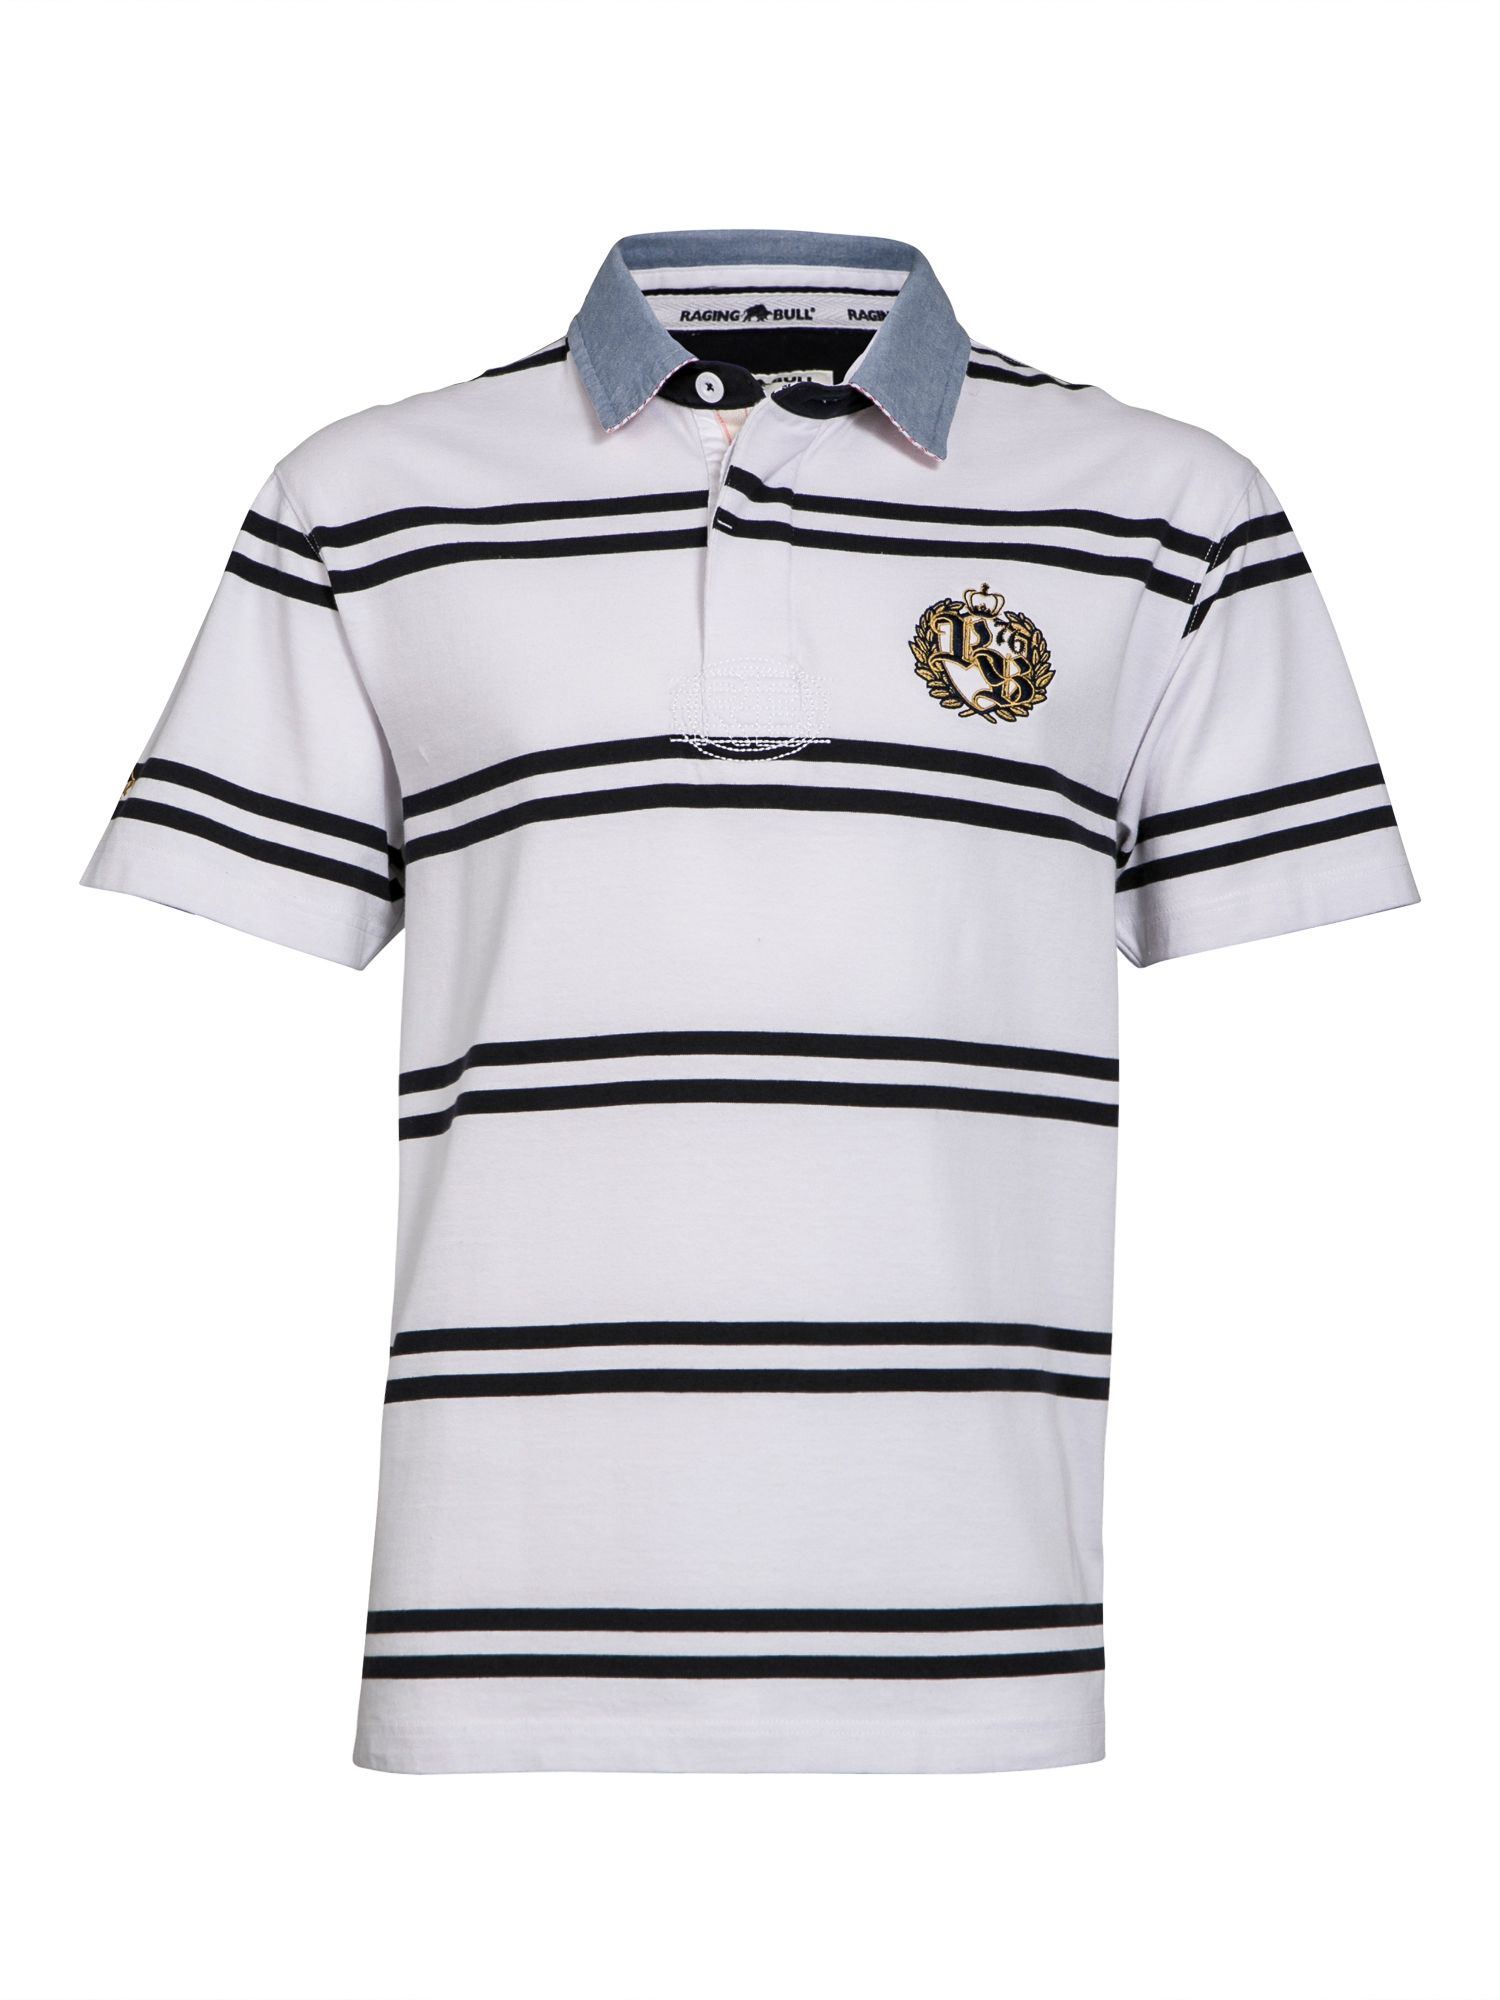 Men's Raging Bull Big & Tall Double Stripe Crest Rugby Shirt, White